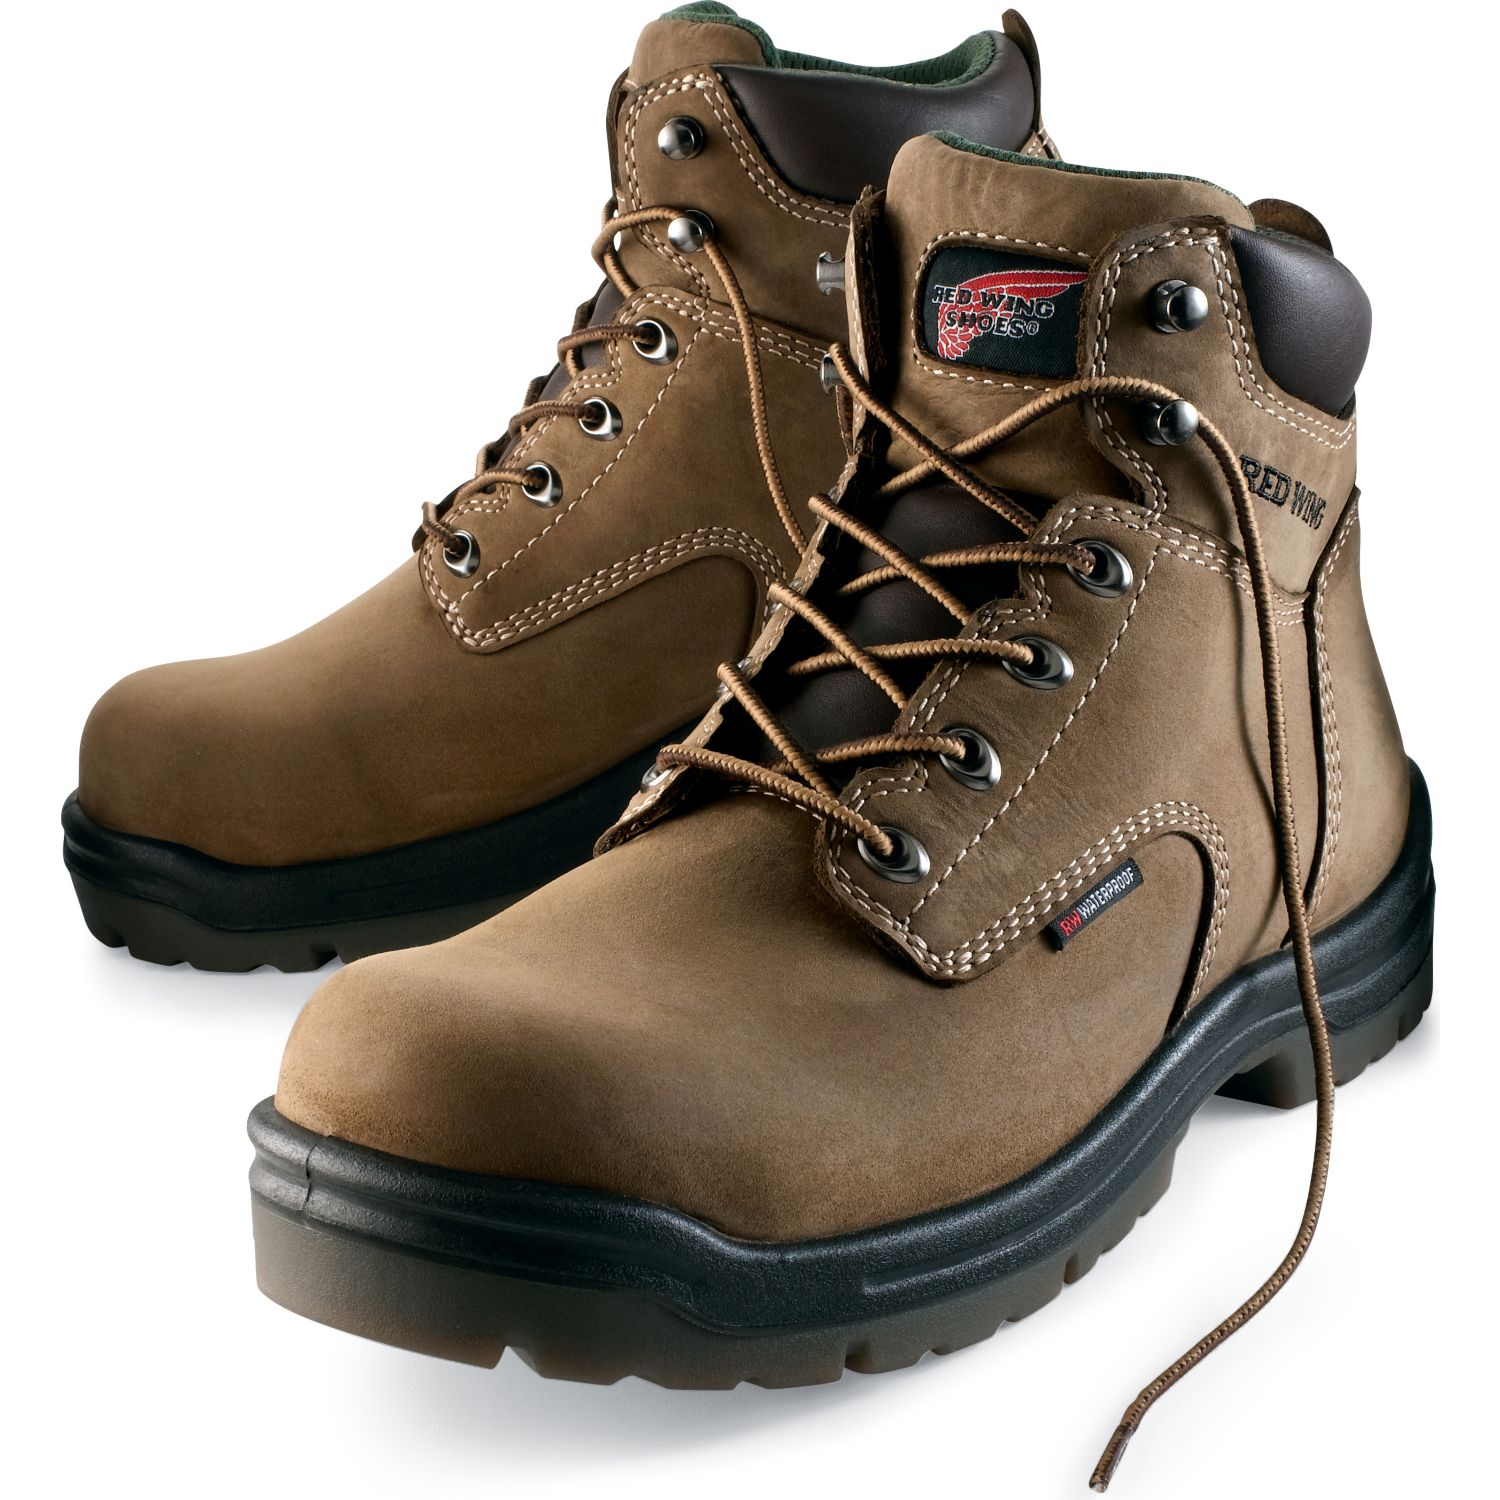 Red Wing Mens Boots NP1Rh34G